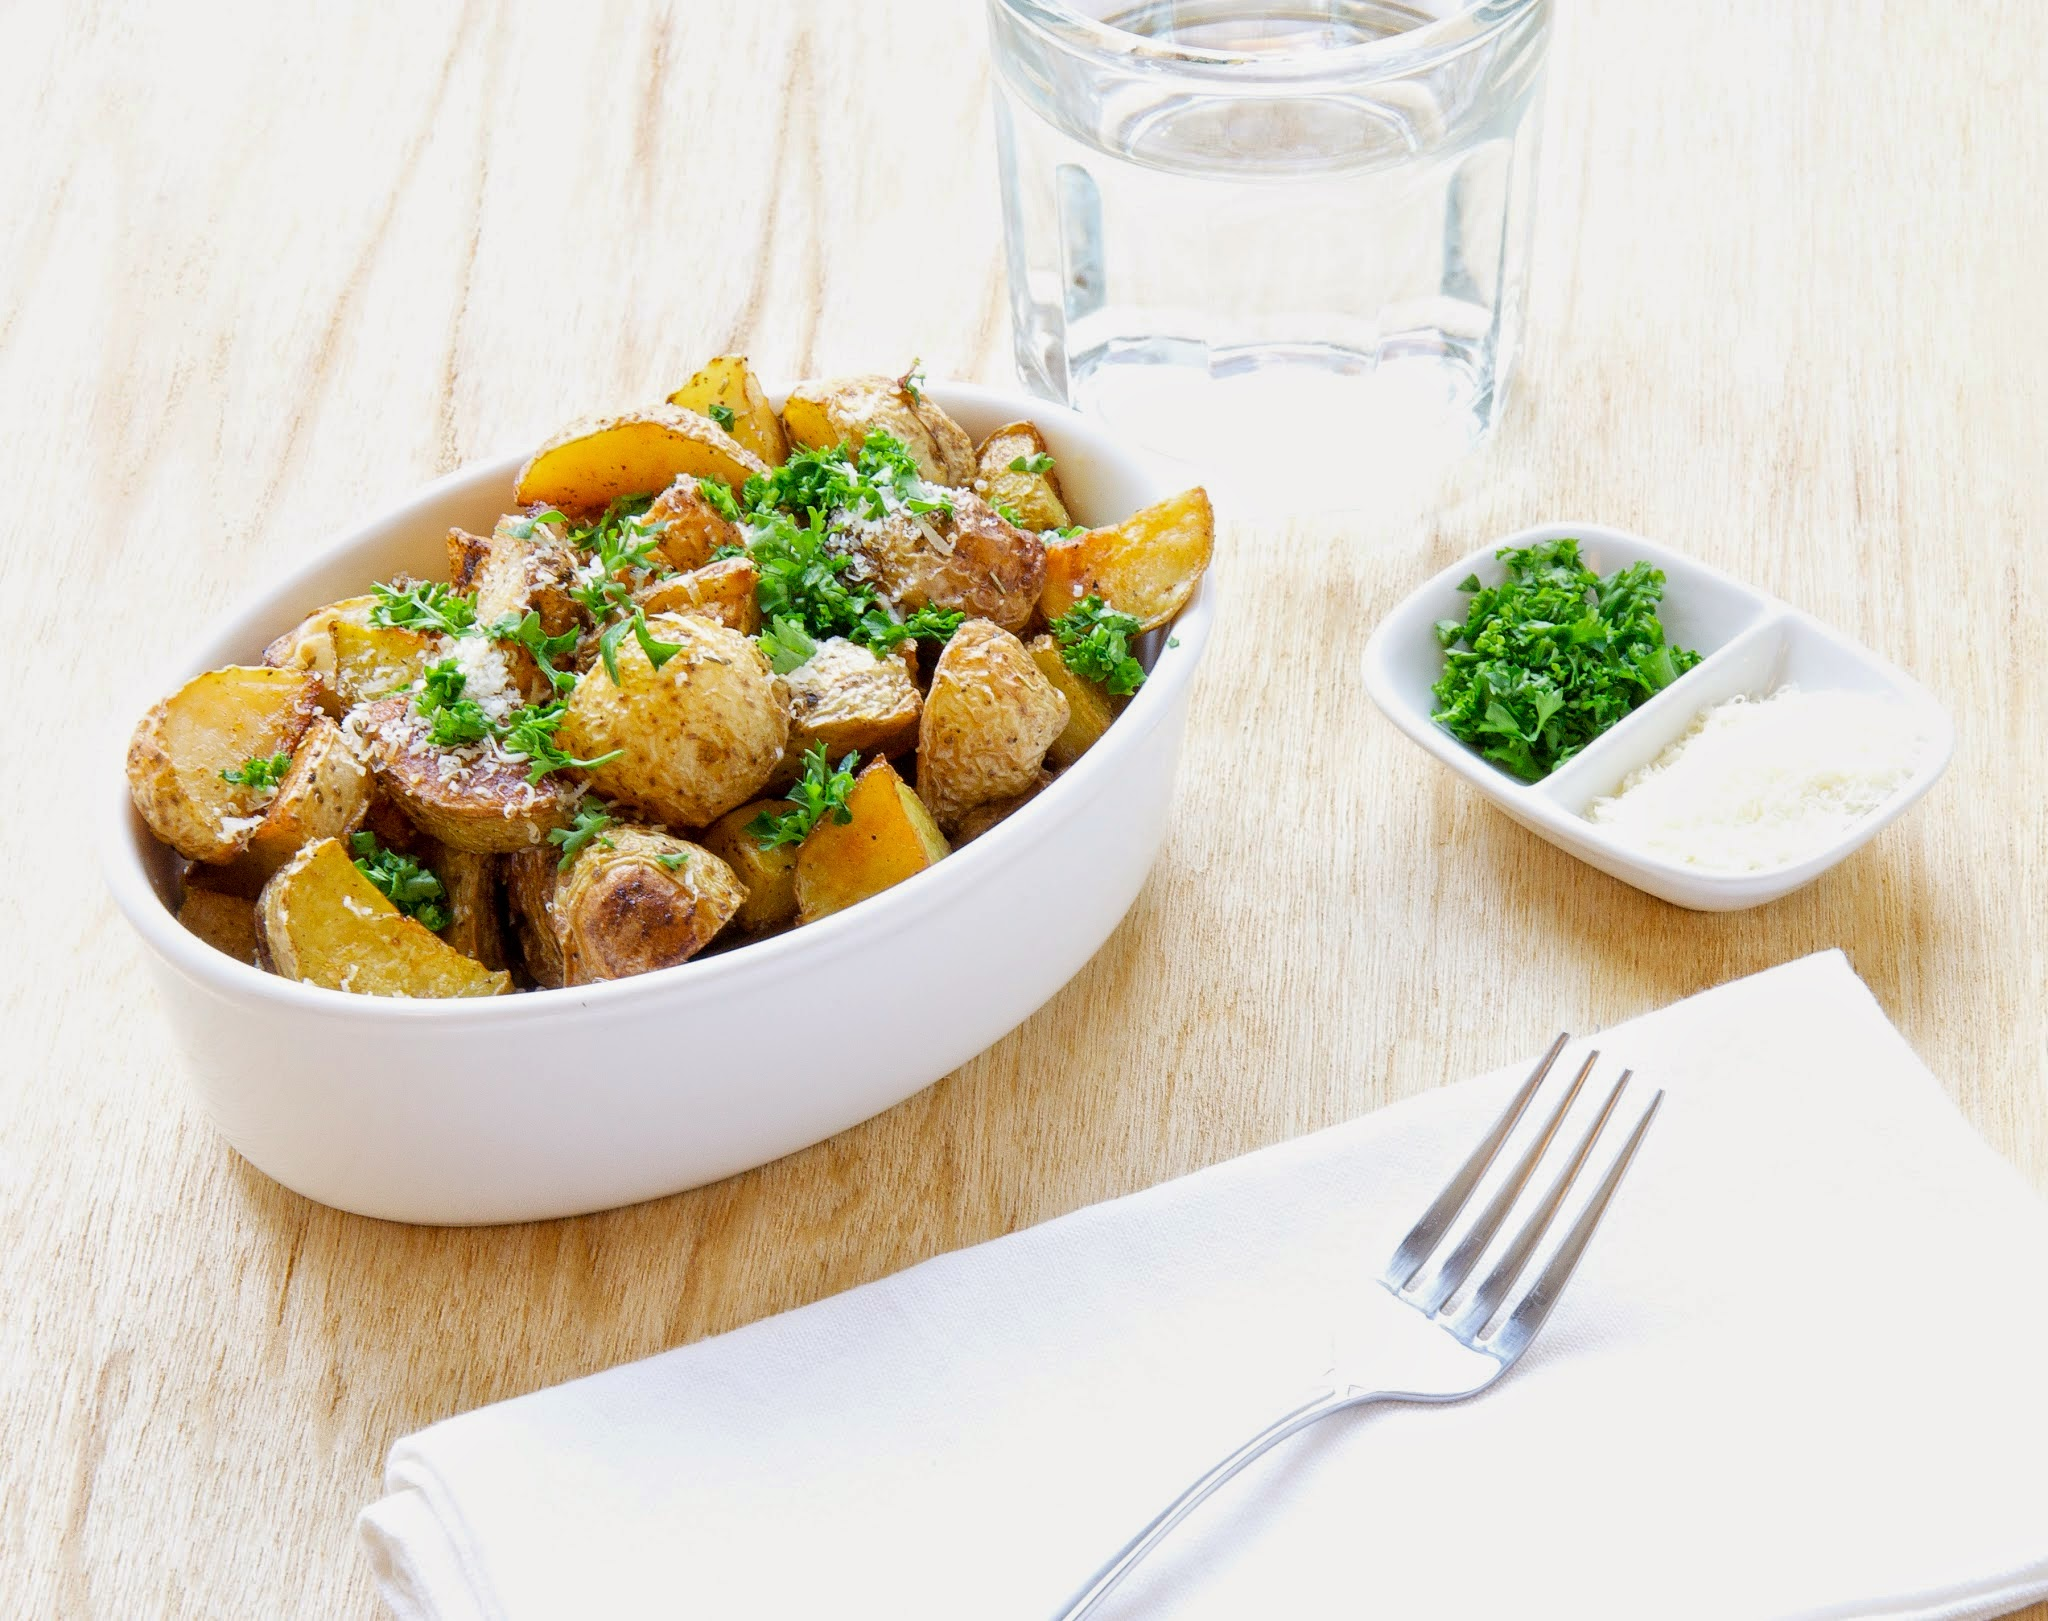 oven-roasted-herbed-potatoes-with-herbs-summer-grilling-season